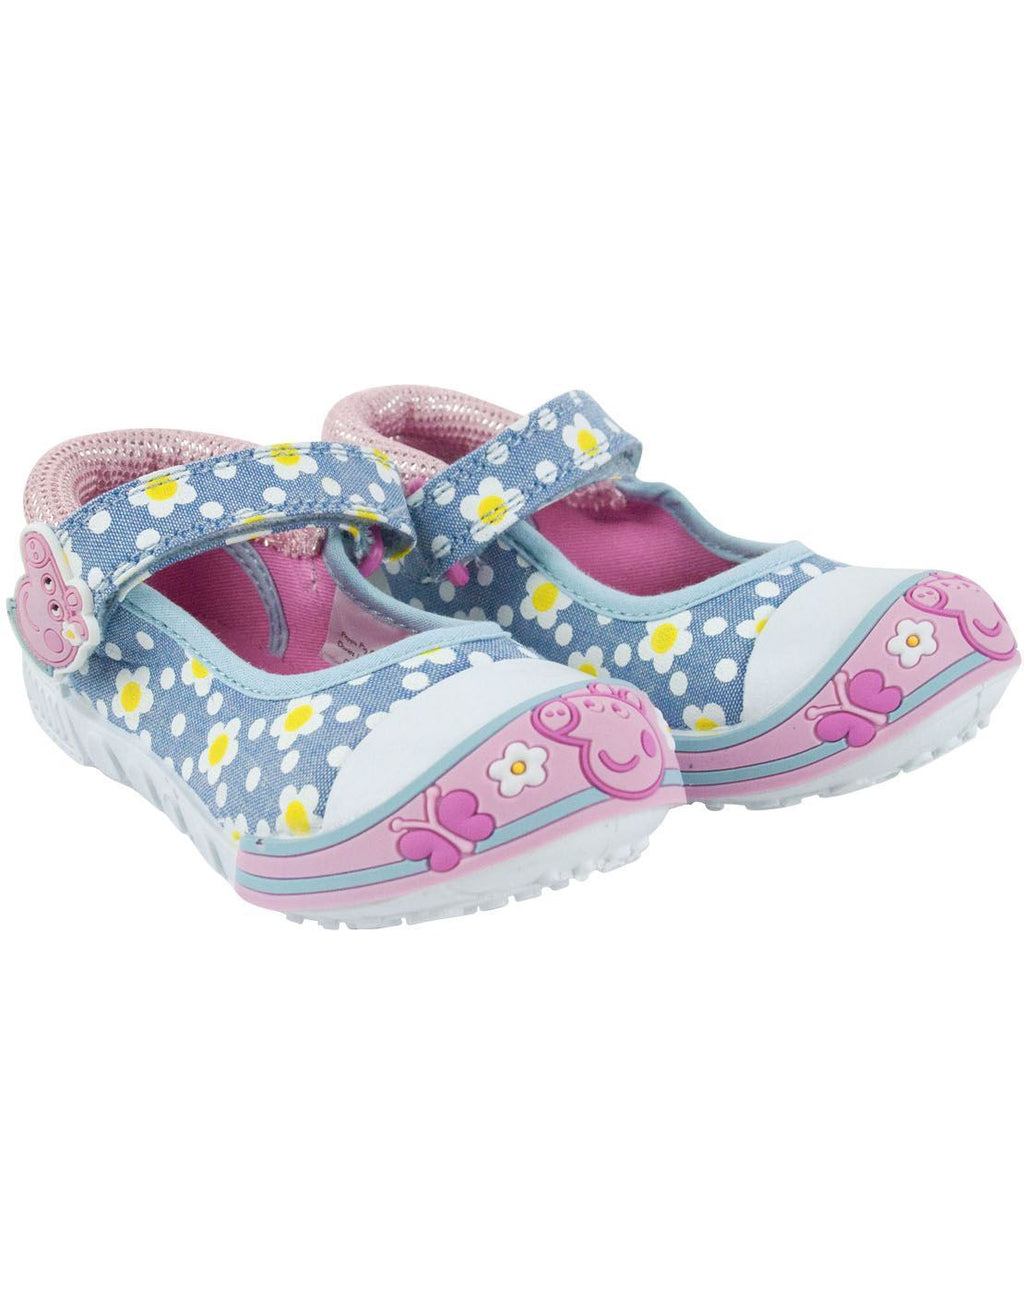 Peppa Pig Girl's Bar Shoes